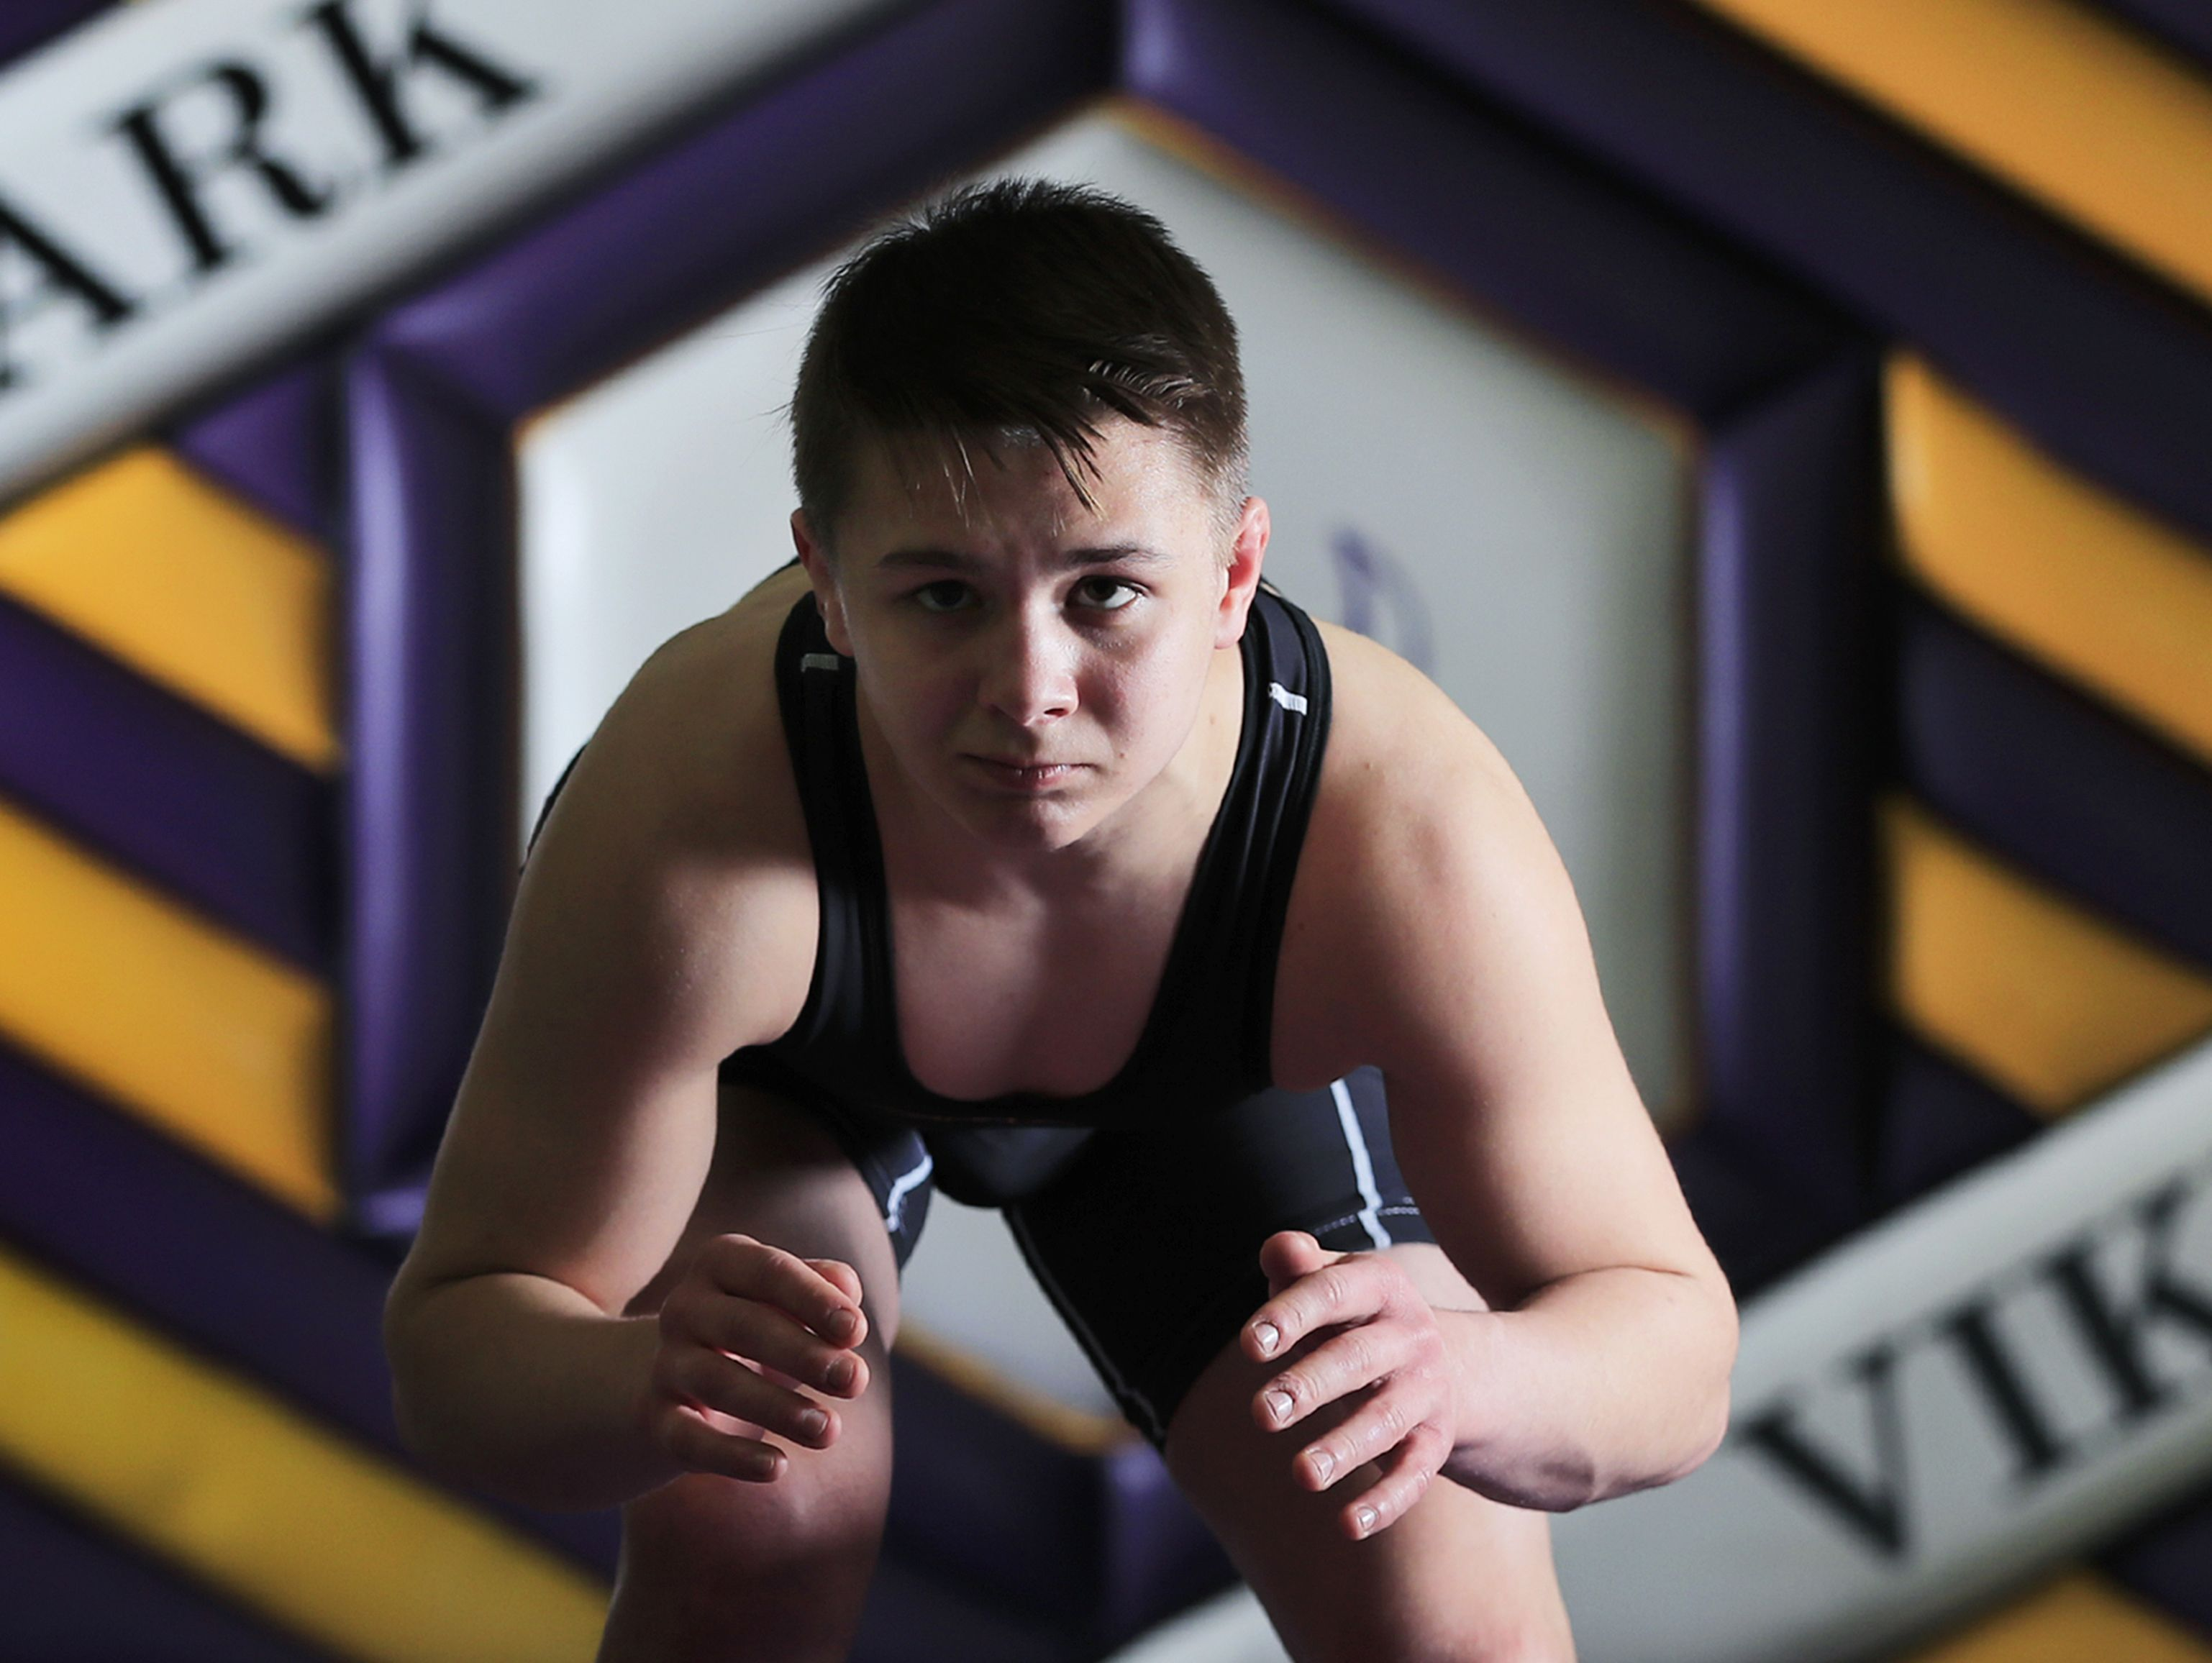 Denmark senior Brock Bergelin is the 2017 Green Bay Press-Gazette wrestler of the year. Bergelin went 37-1 to win his third WIAA Division 2 state title.